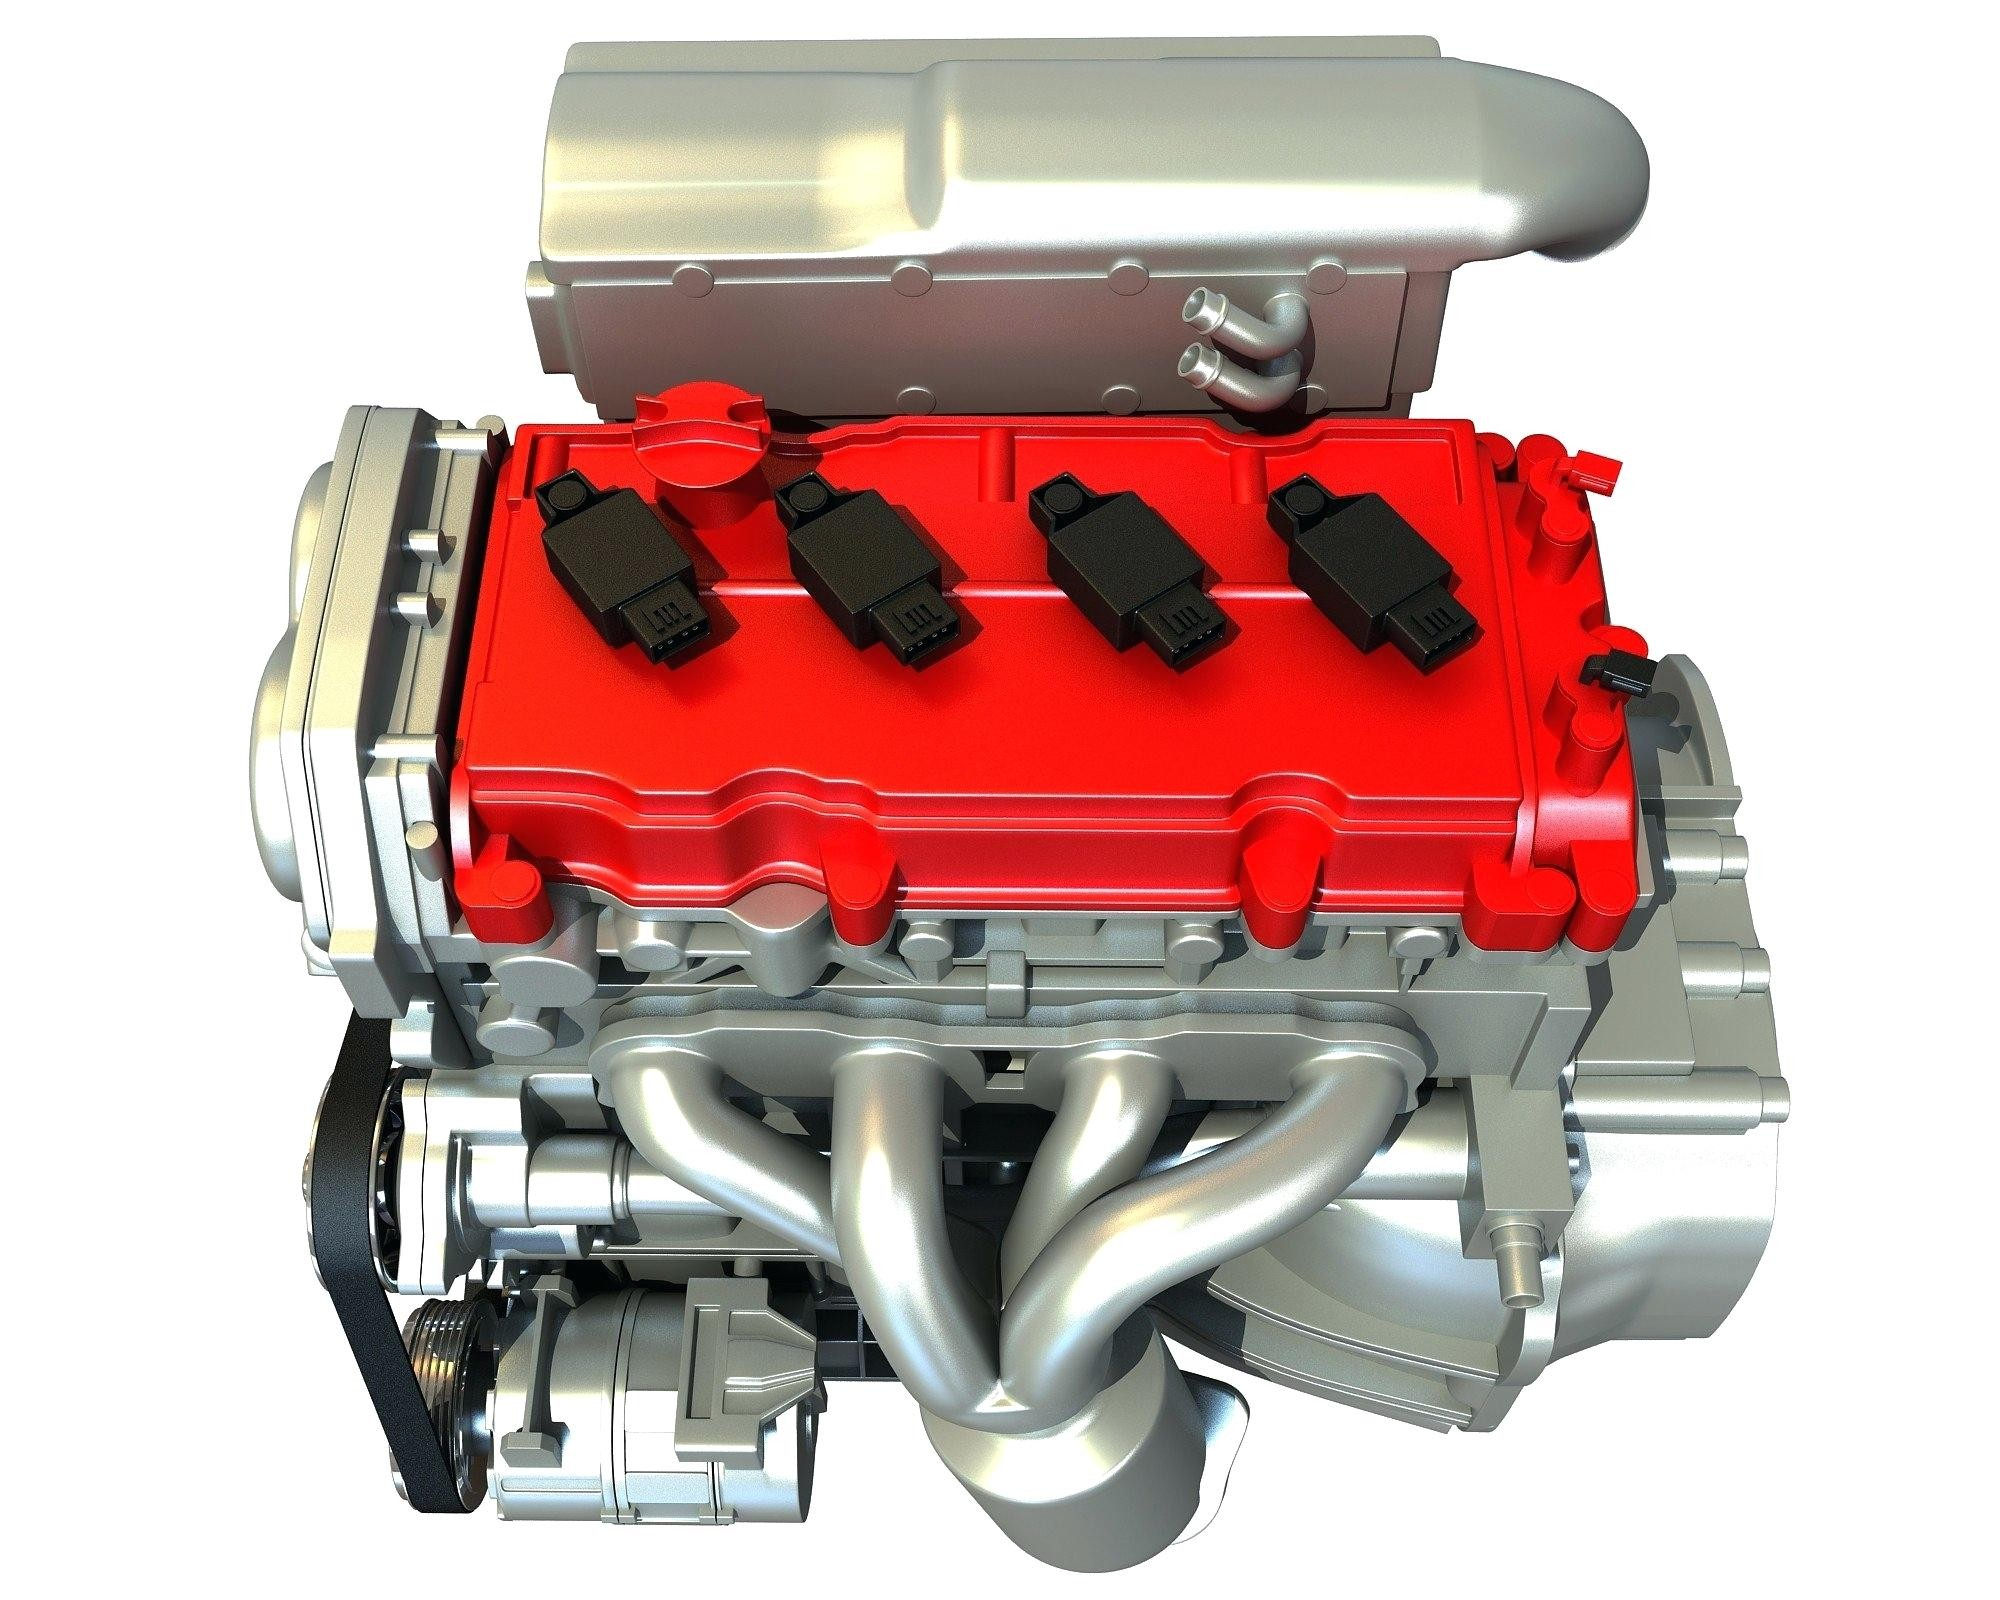 Full Car Engine Diagram 4 Cylinder Diesel Engine Diagram Horse Car Wiring Library Expansion Of Full Car Engine Diagram